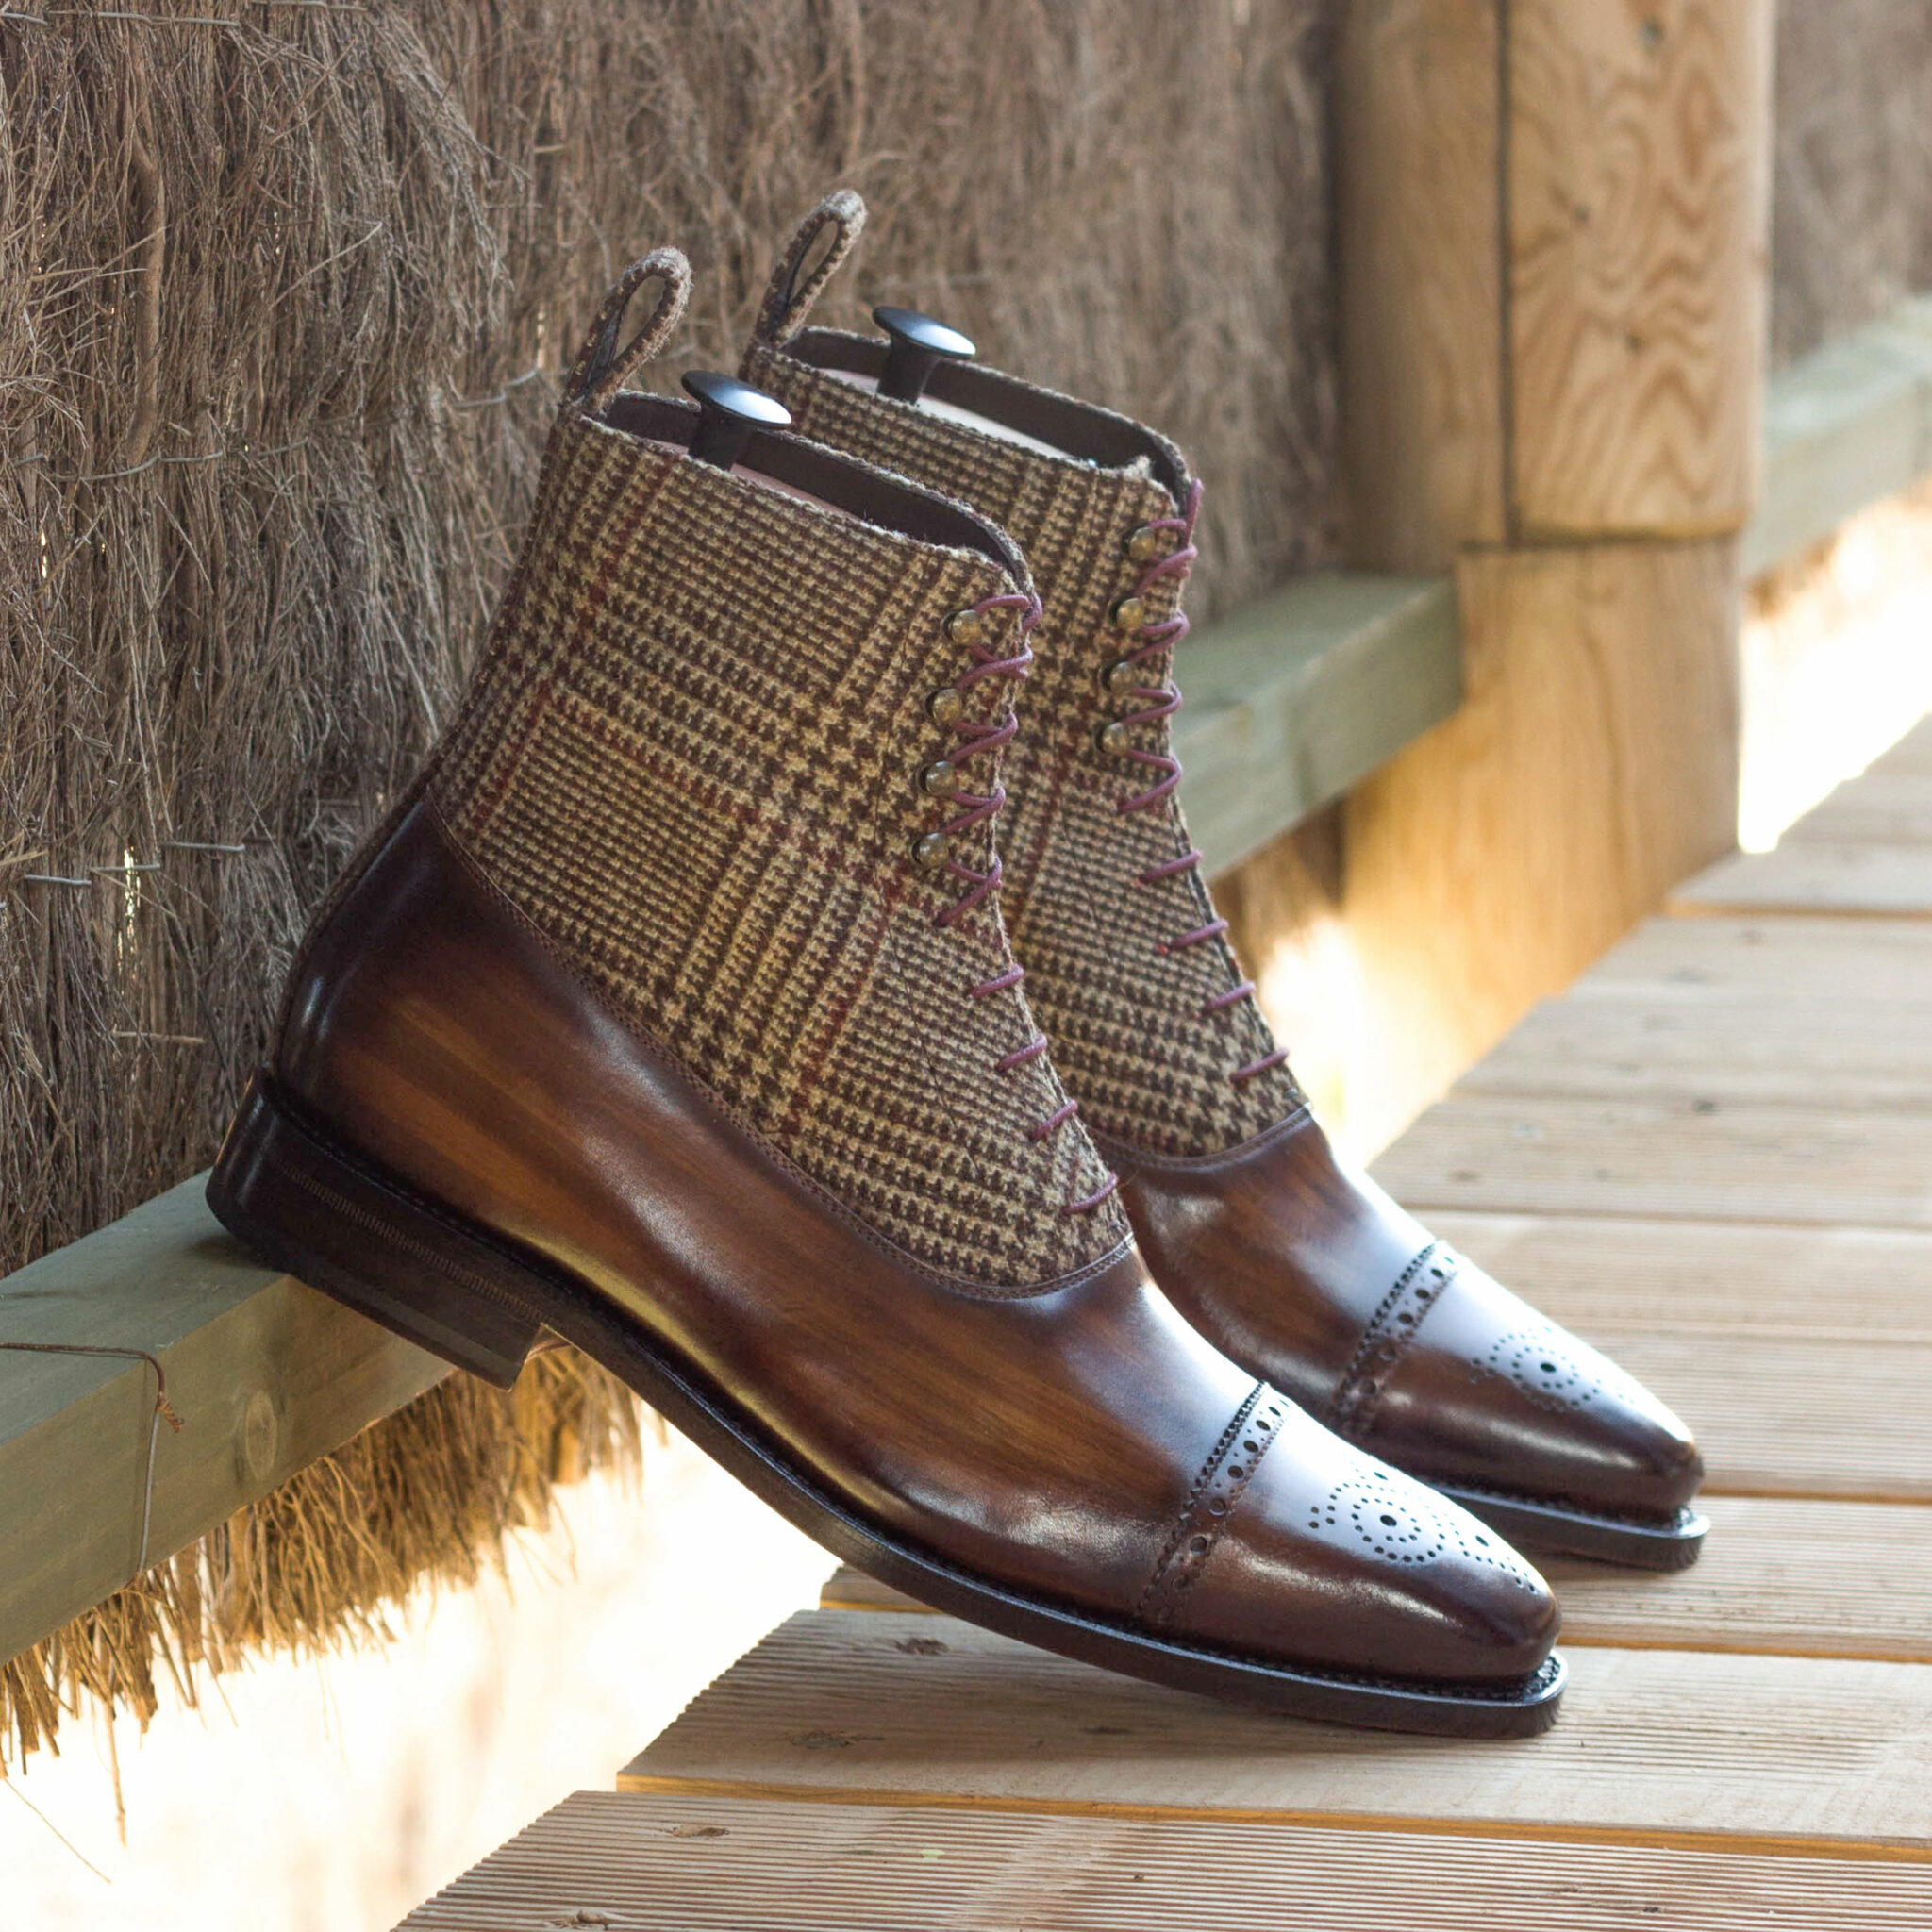 Balmoral boot tweed sartorial + brown crust patina : 370€